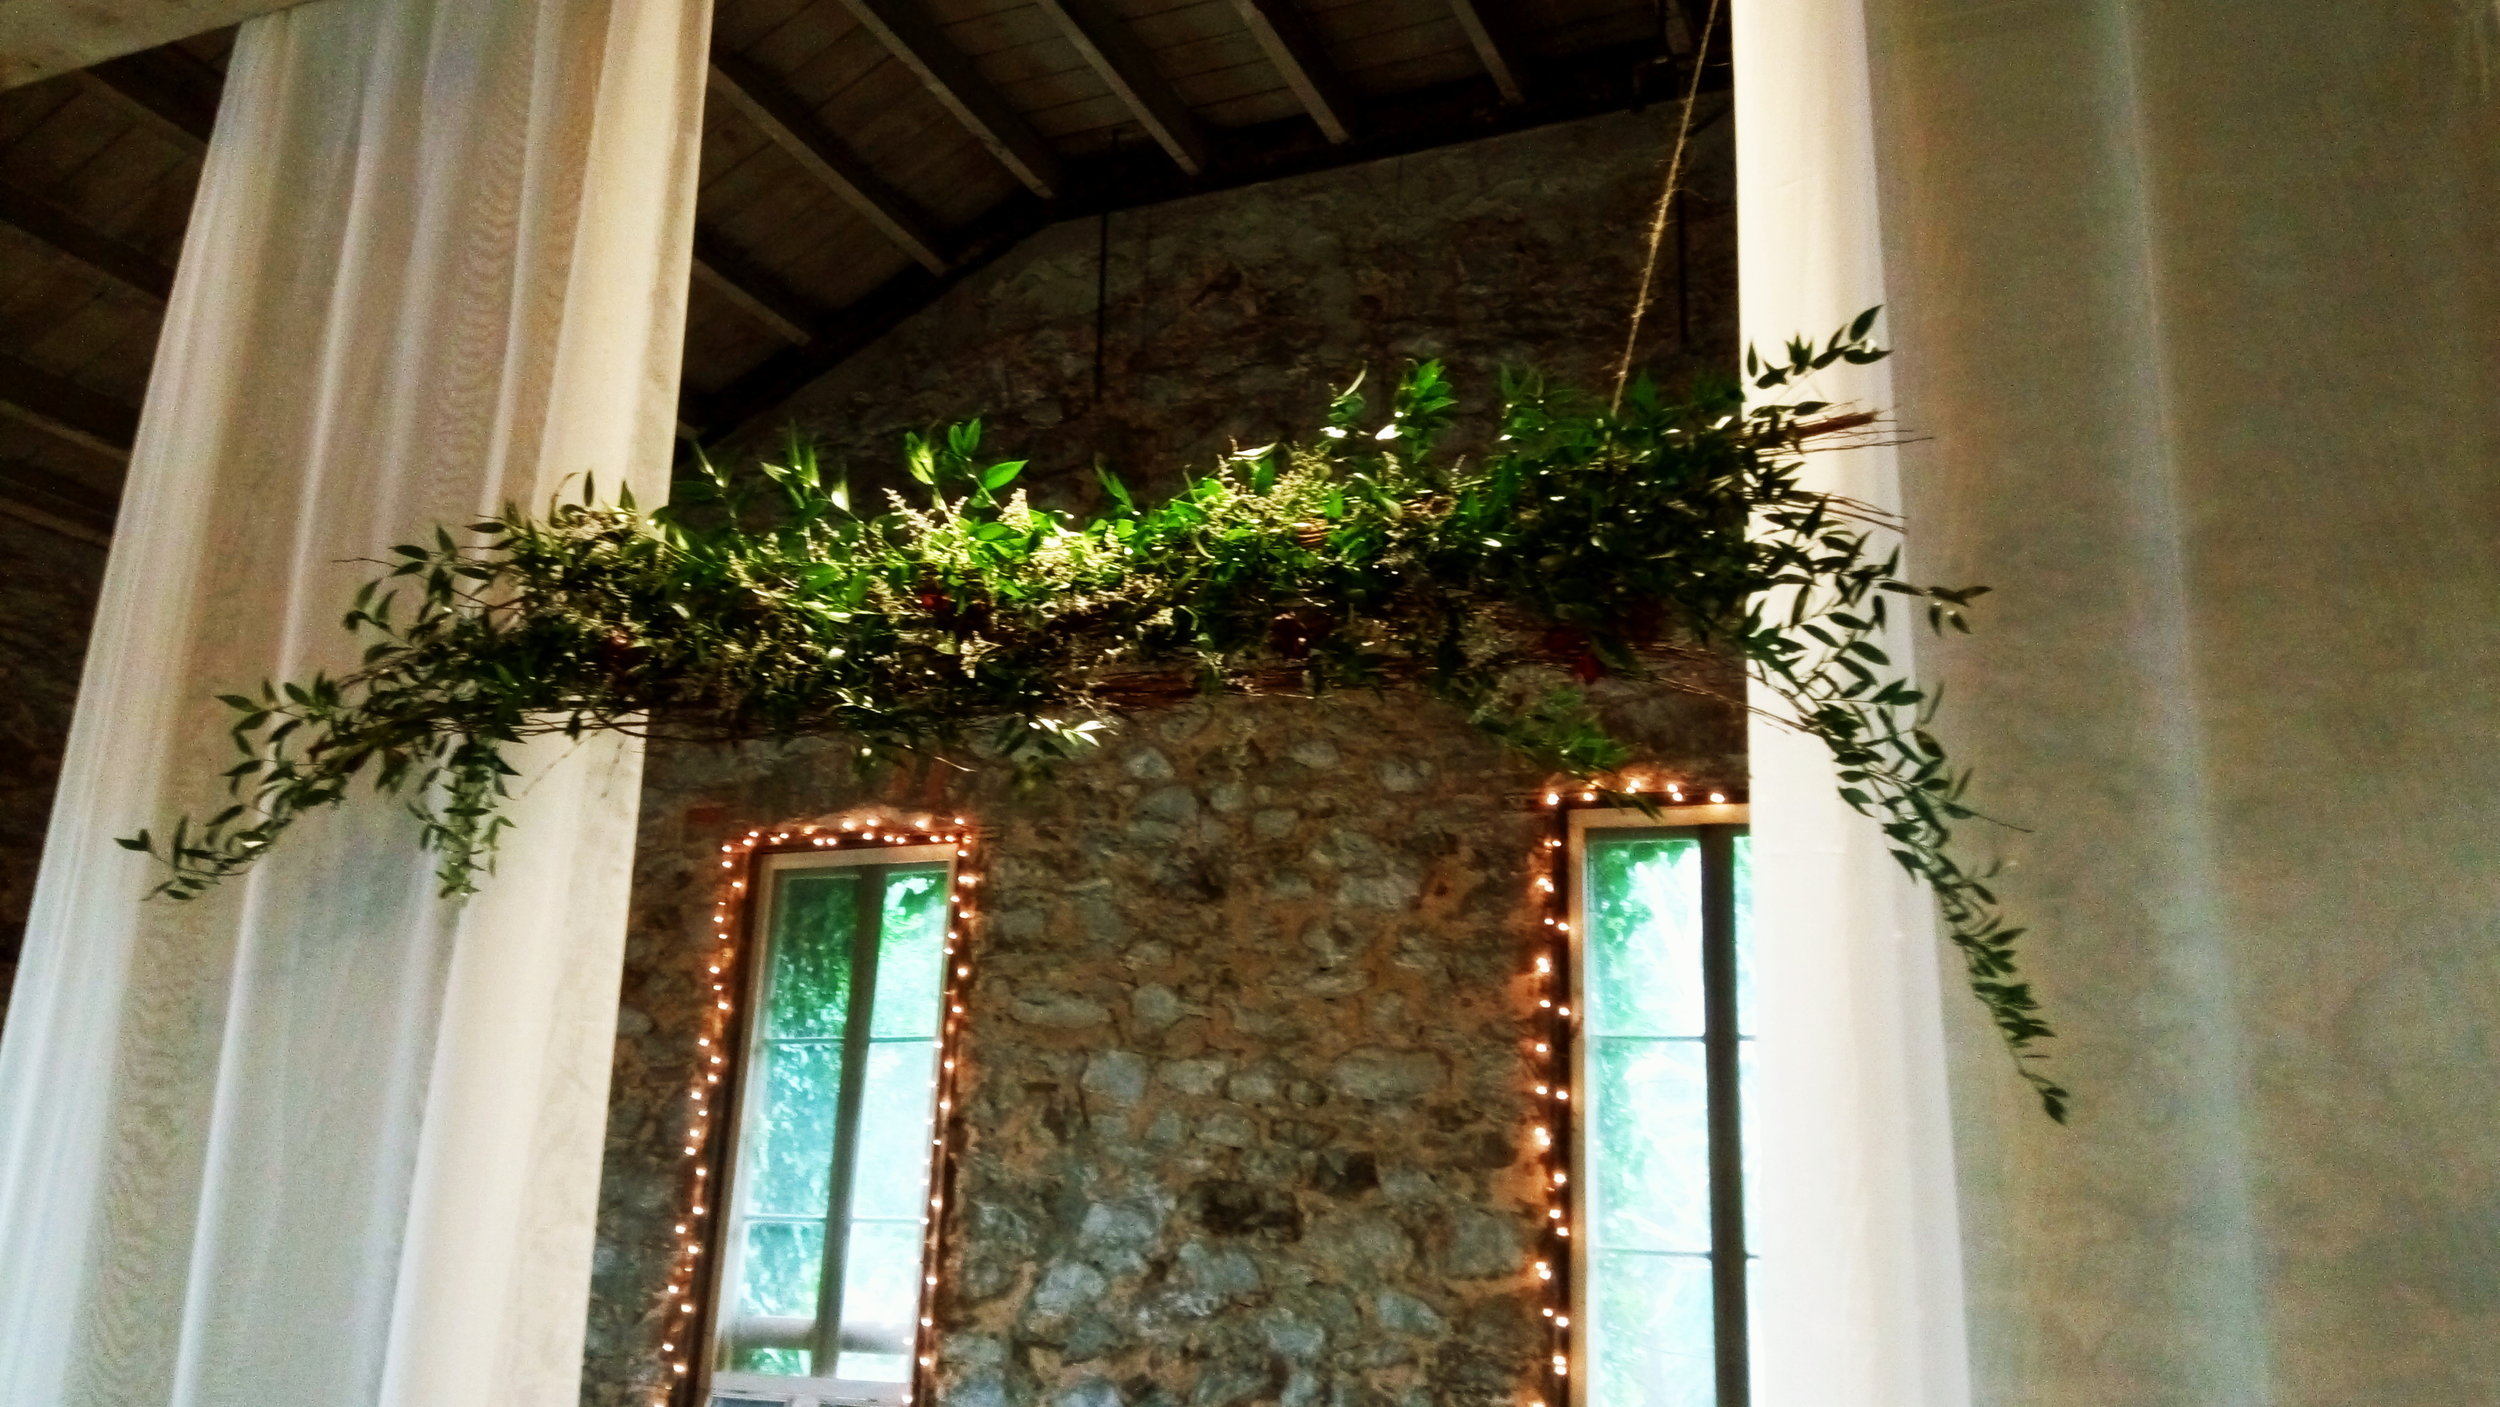 Wedding Floral Design Miners Foundry Nevada City, Nevada County, South Yuba